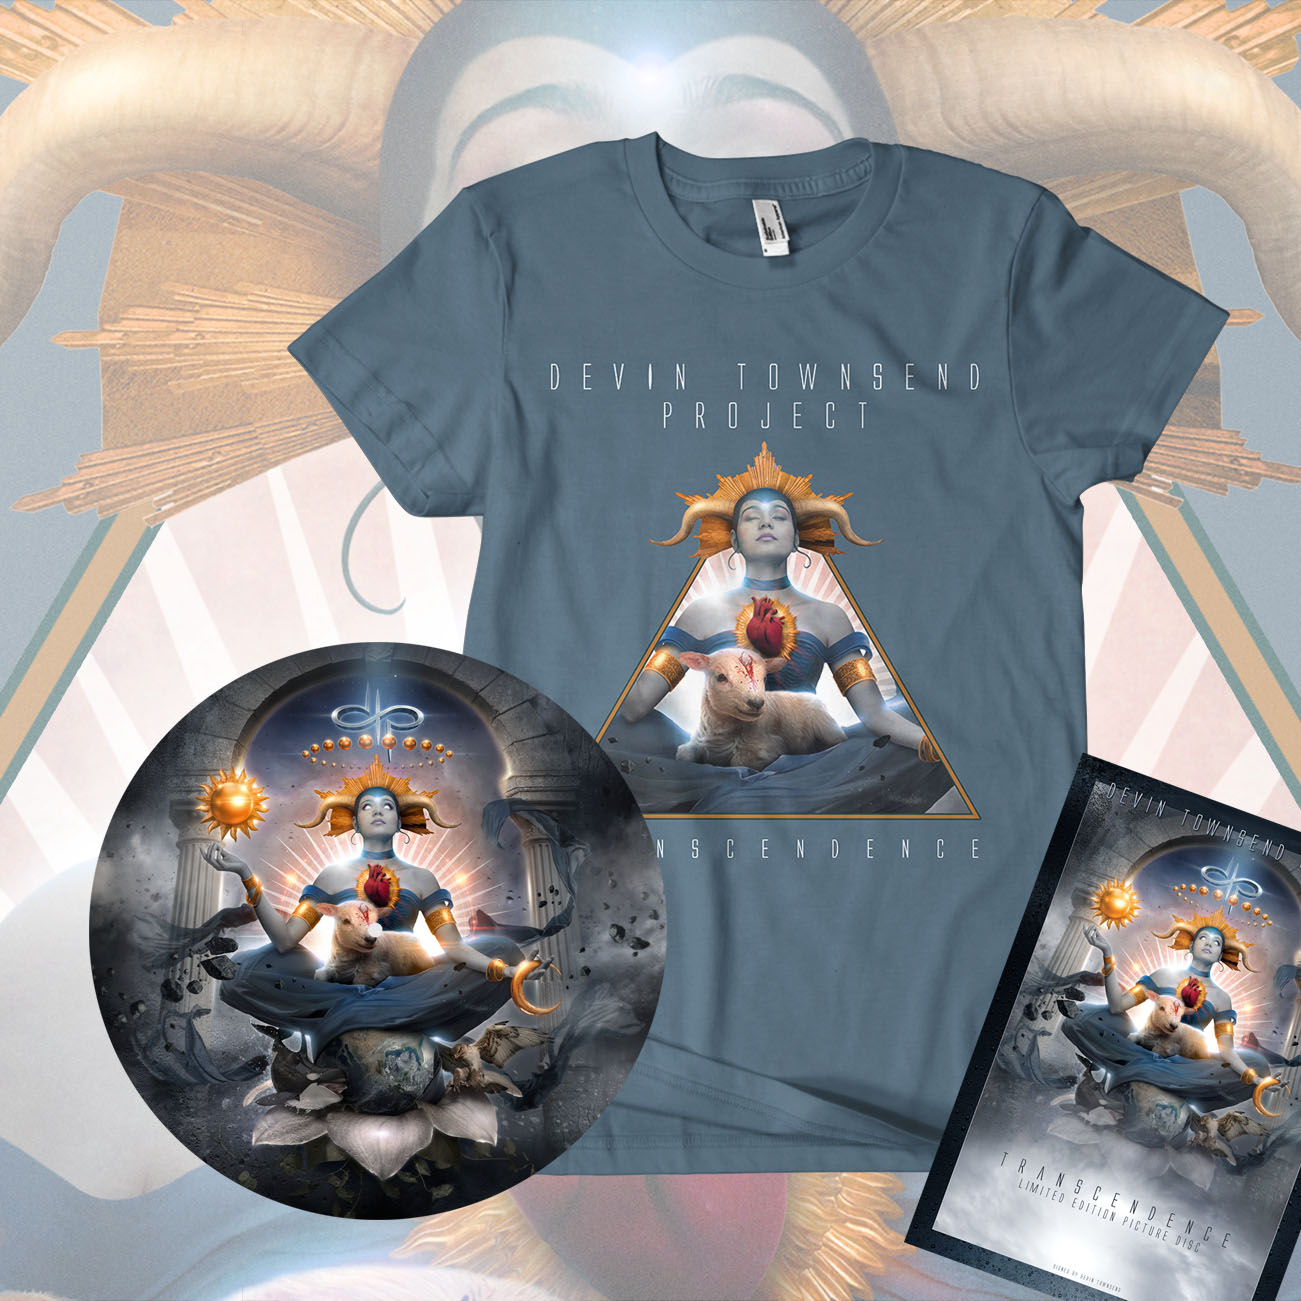 Bundle - Picture Disc + T-shirt